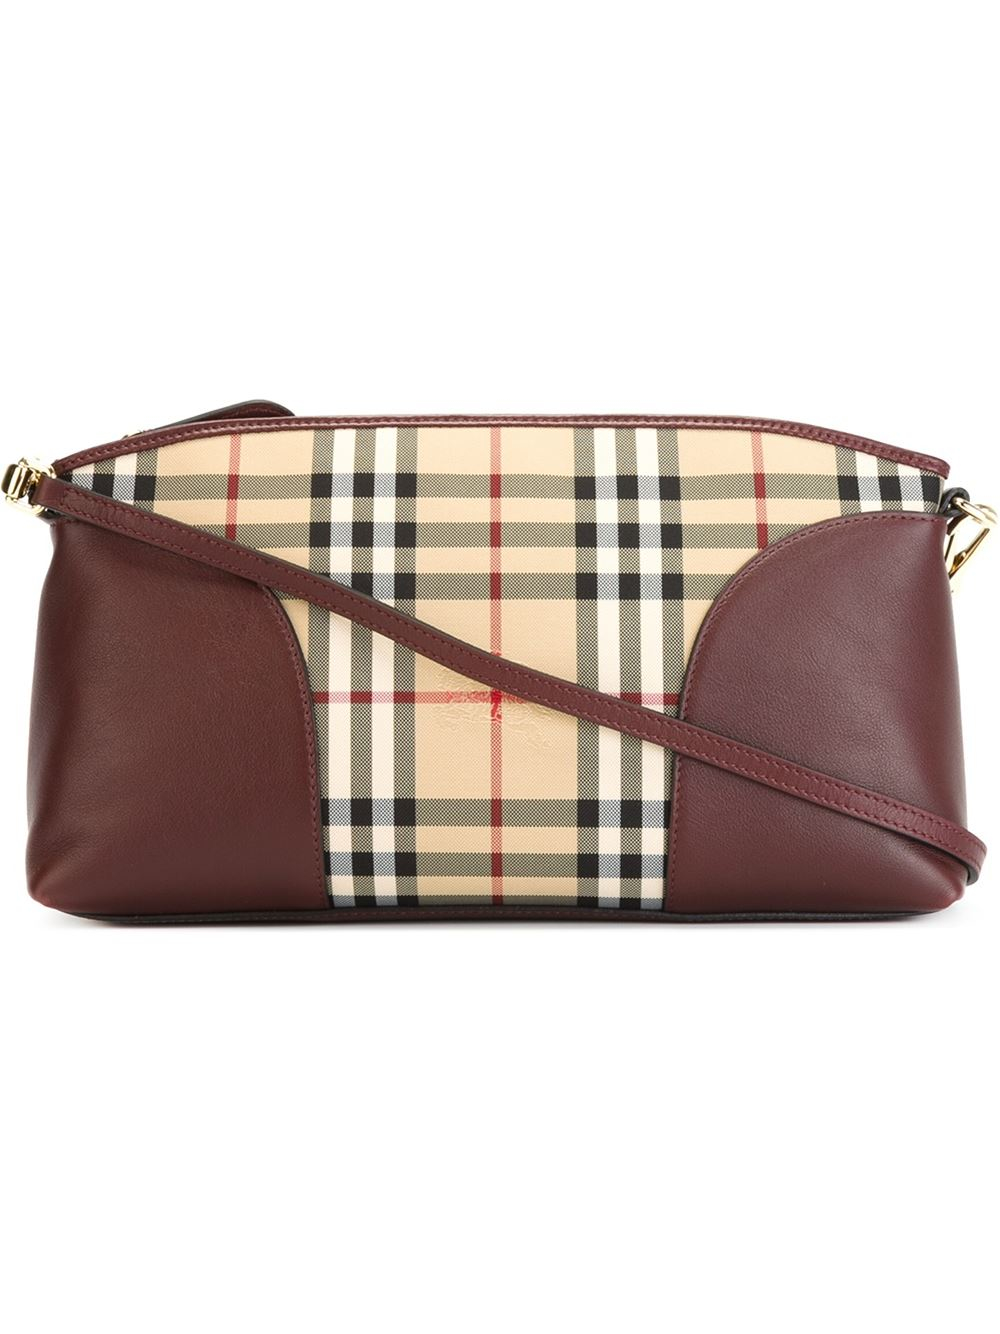 e1eede27159 Gallery. Previously sold at  Farfetch · Women s Burberry Horseferry Women s  Coach Cross Body Women s Leather Messenger Bags ...